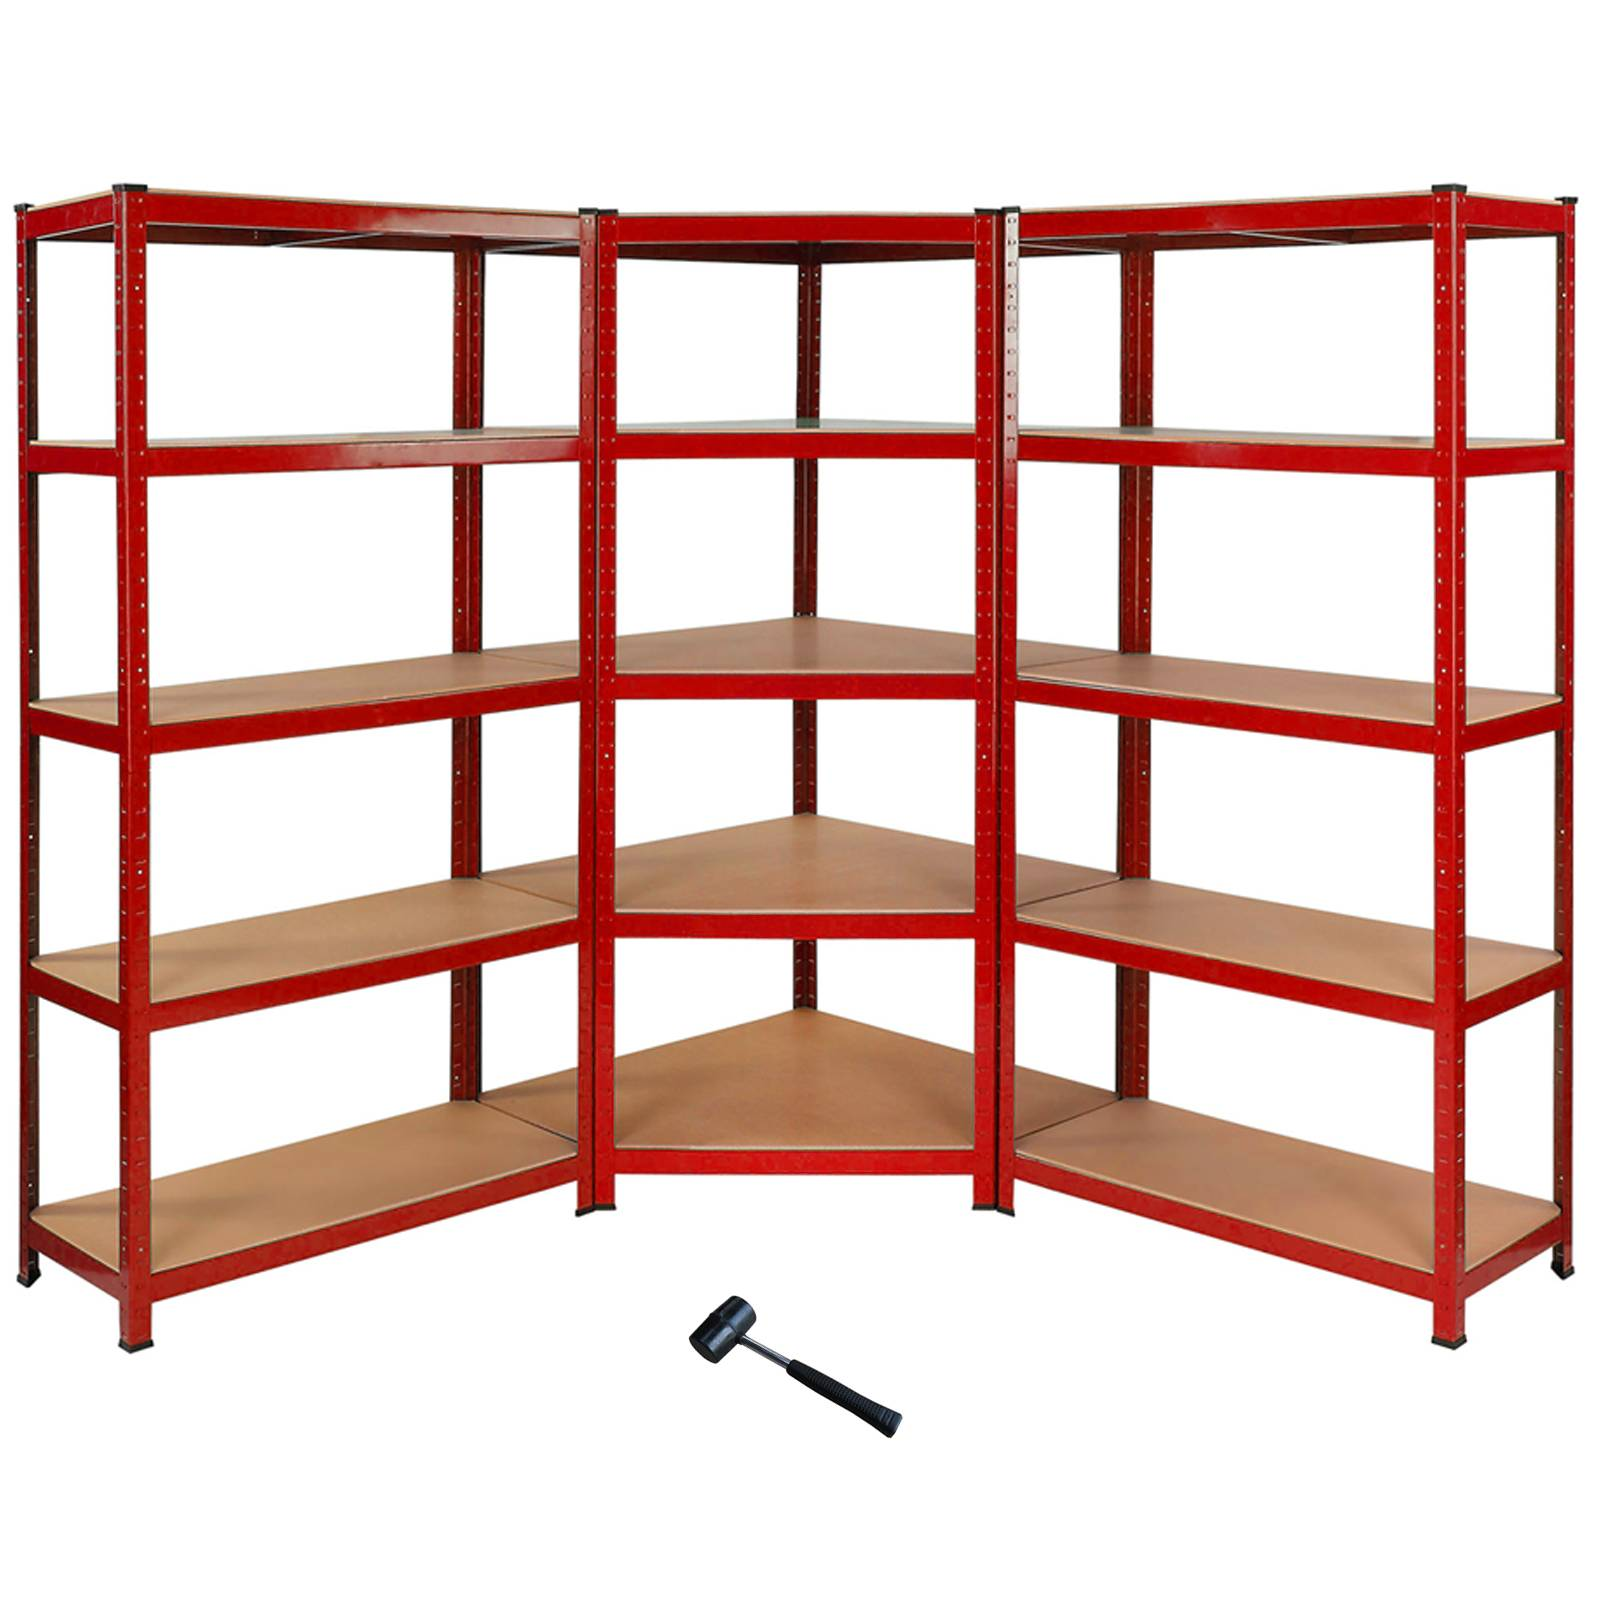 1 x corner racking garage shelving 2 x 90cm bays metal. Black Bedroom Furniture Sets. Home Design Ideas